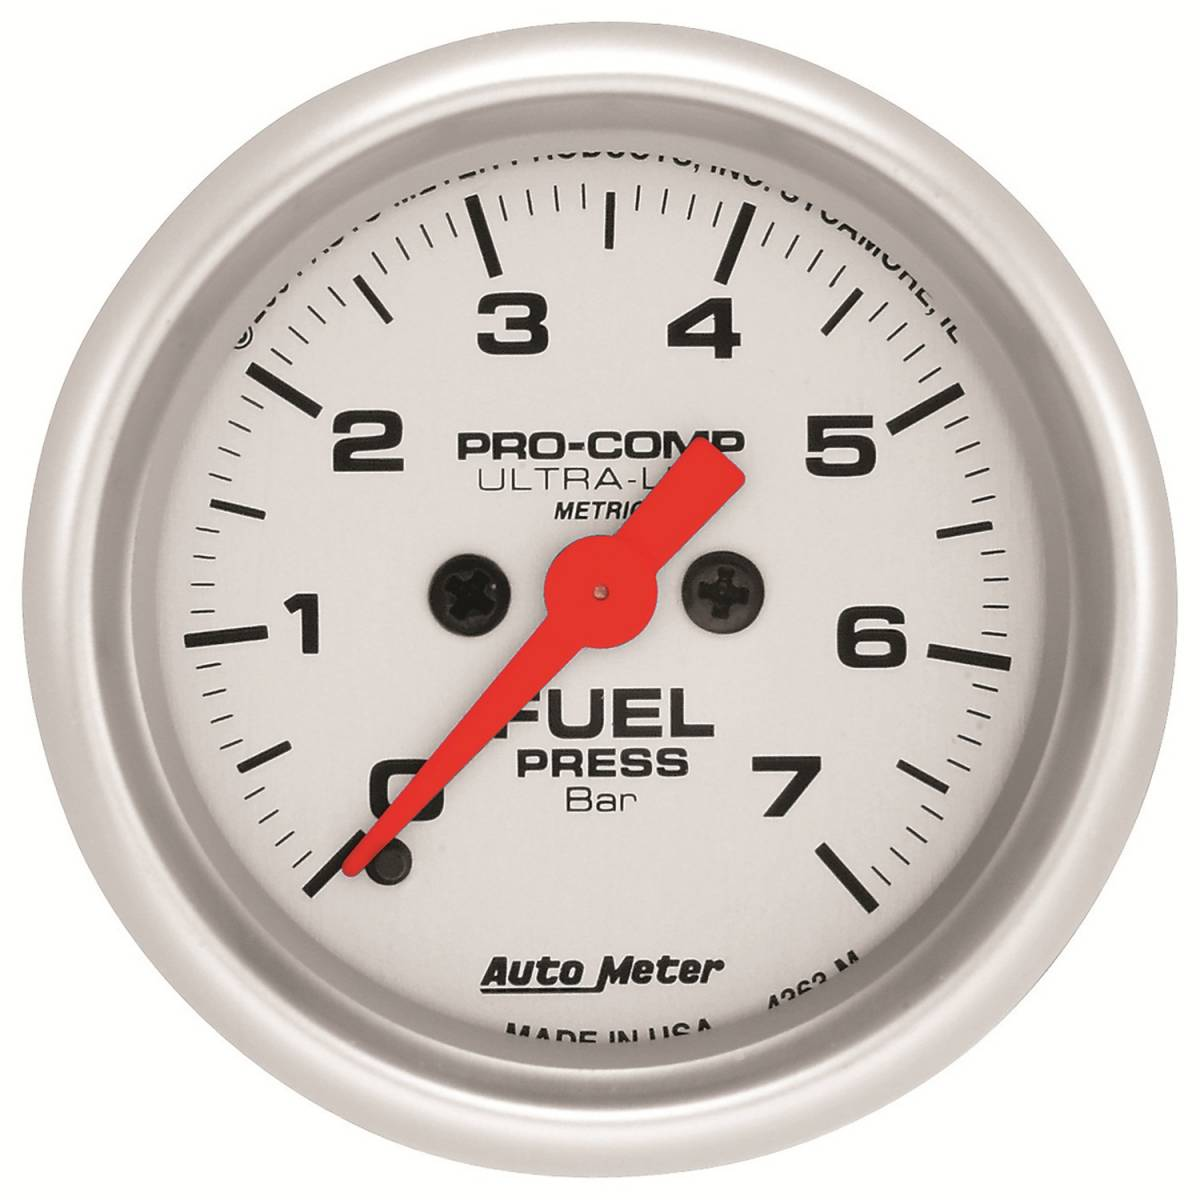 Autometer 4368 Ultra Lite Electric Water Pressure Gauge: AutoMeter #4363-M Gauge; Oil Pressure; 2 1/16in.; 7 BAR